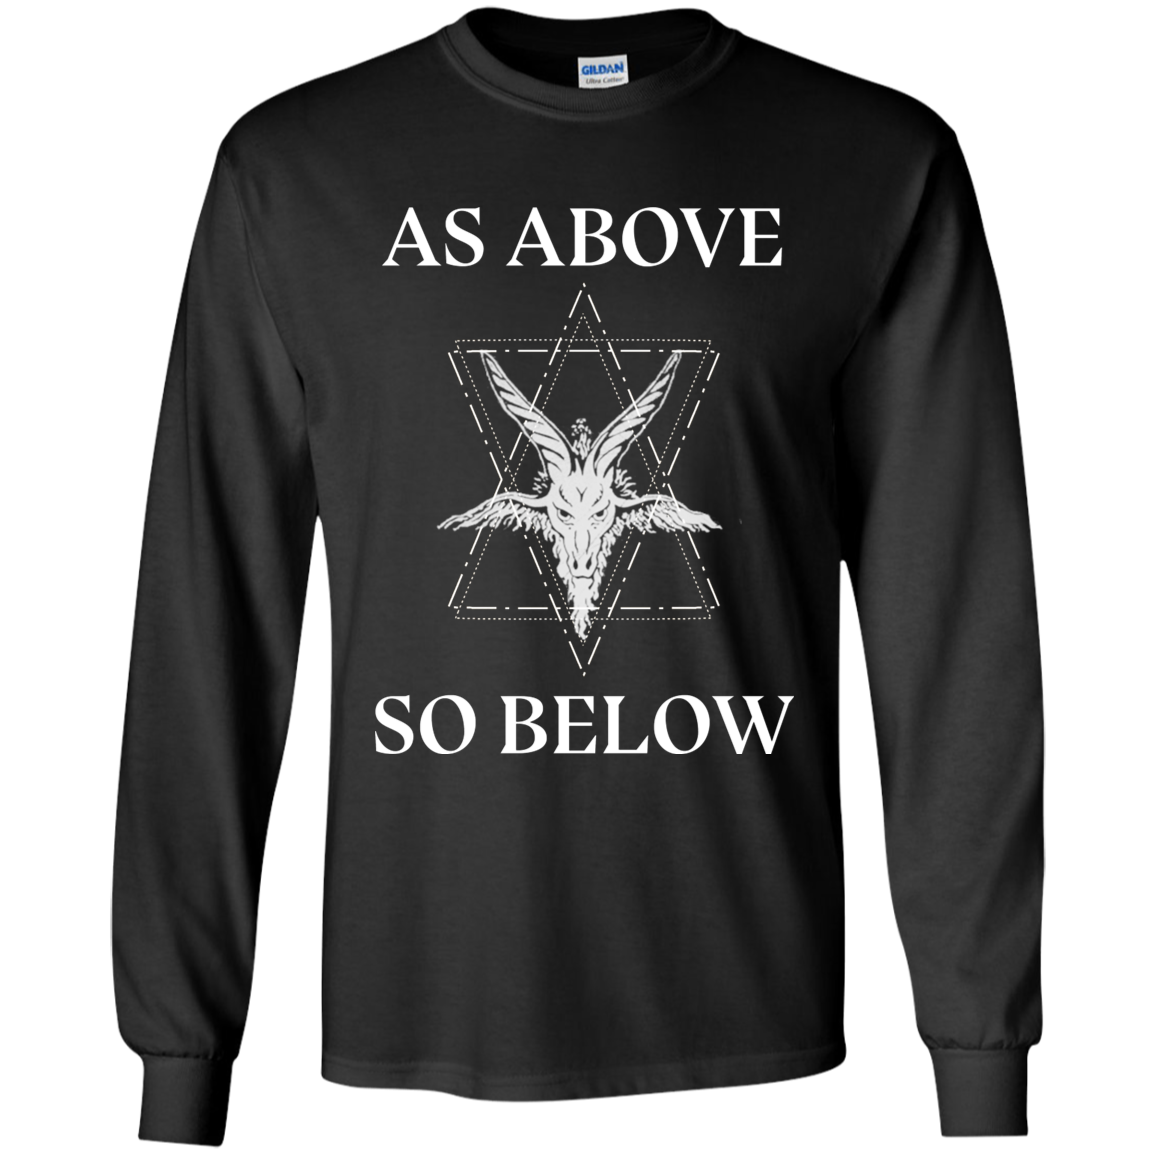 So above so below Satanic Gildan Long Sleeve T-Shirt